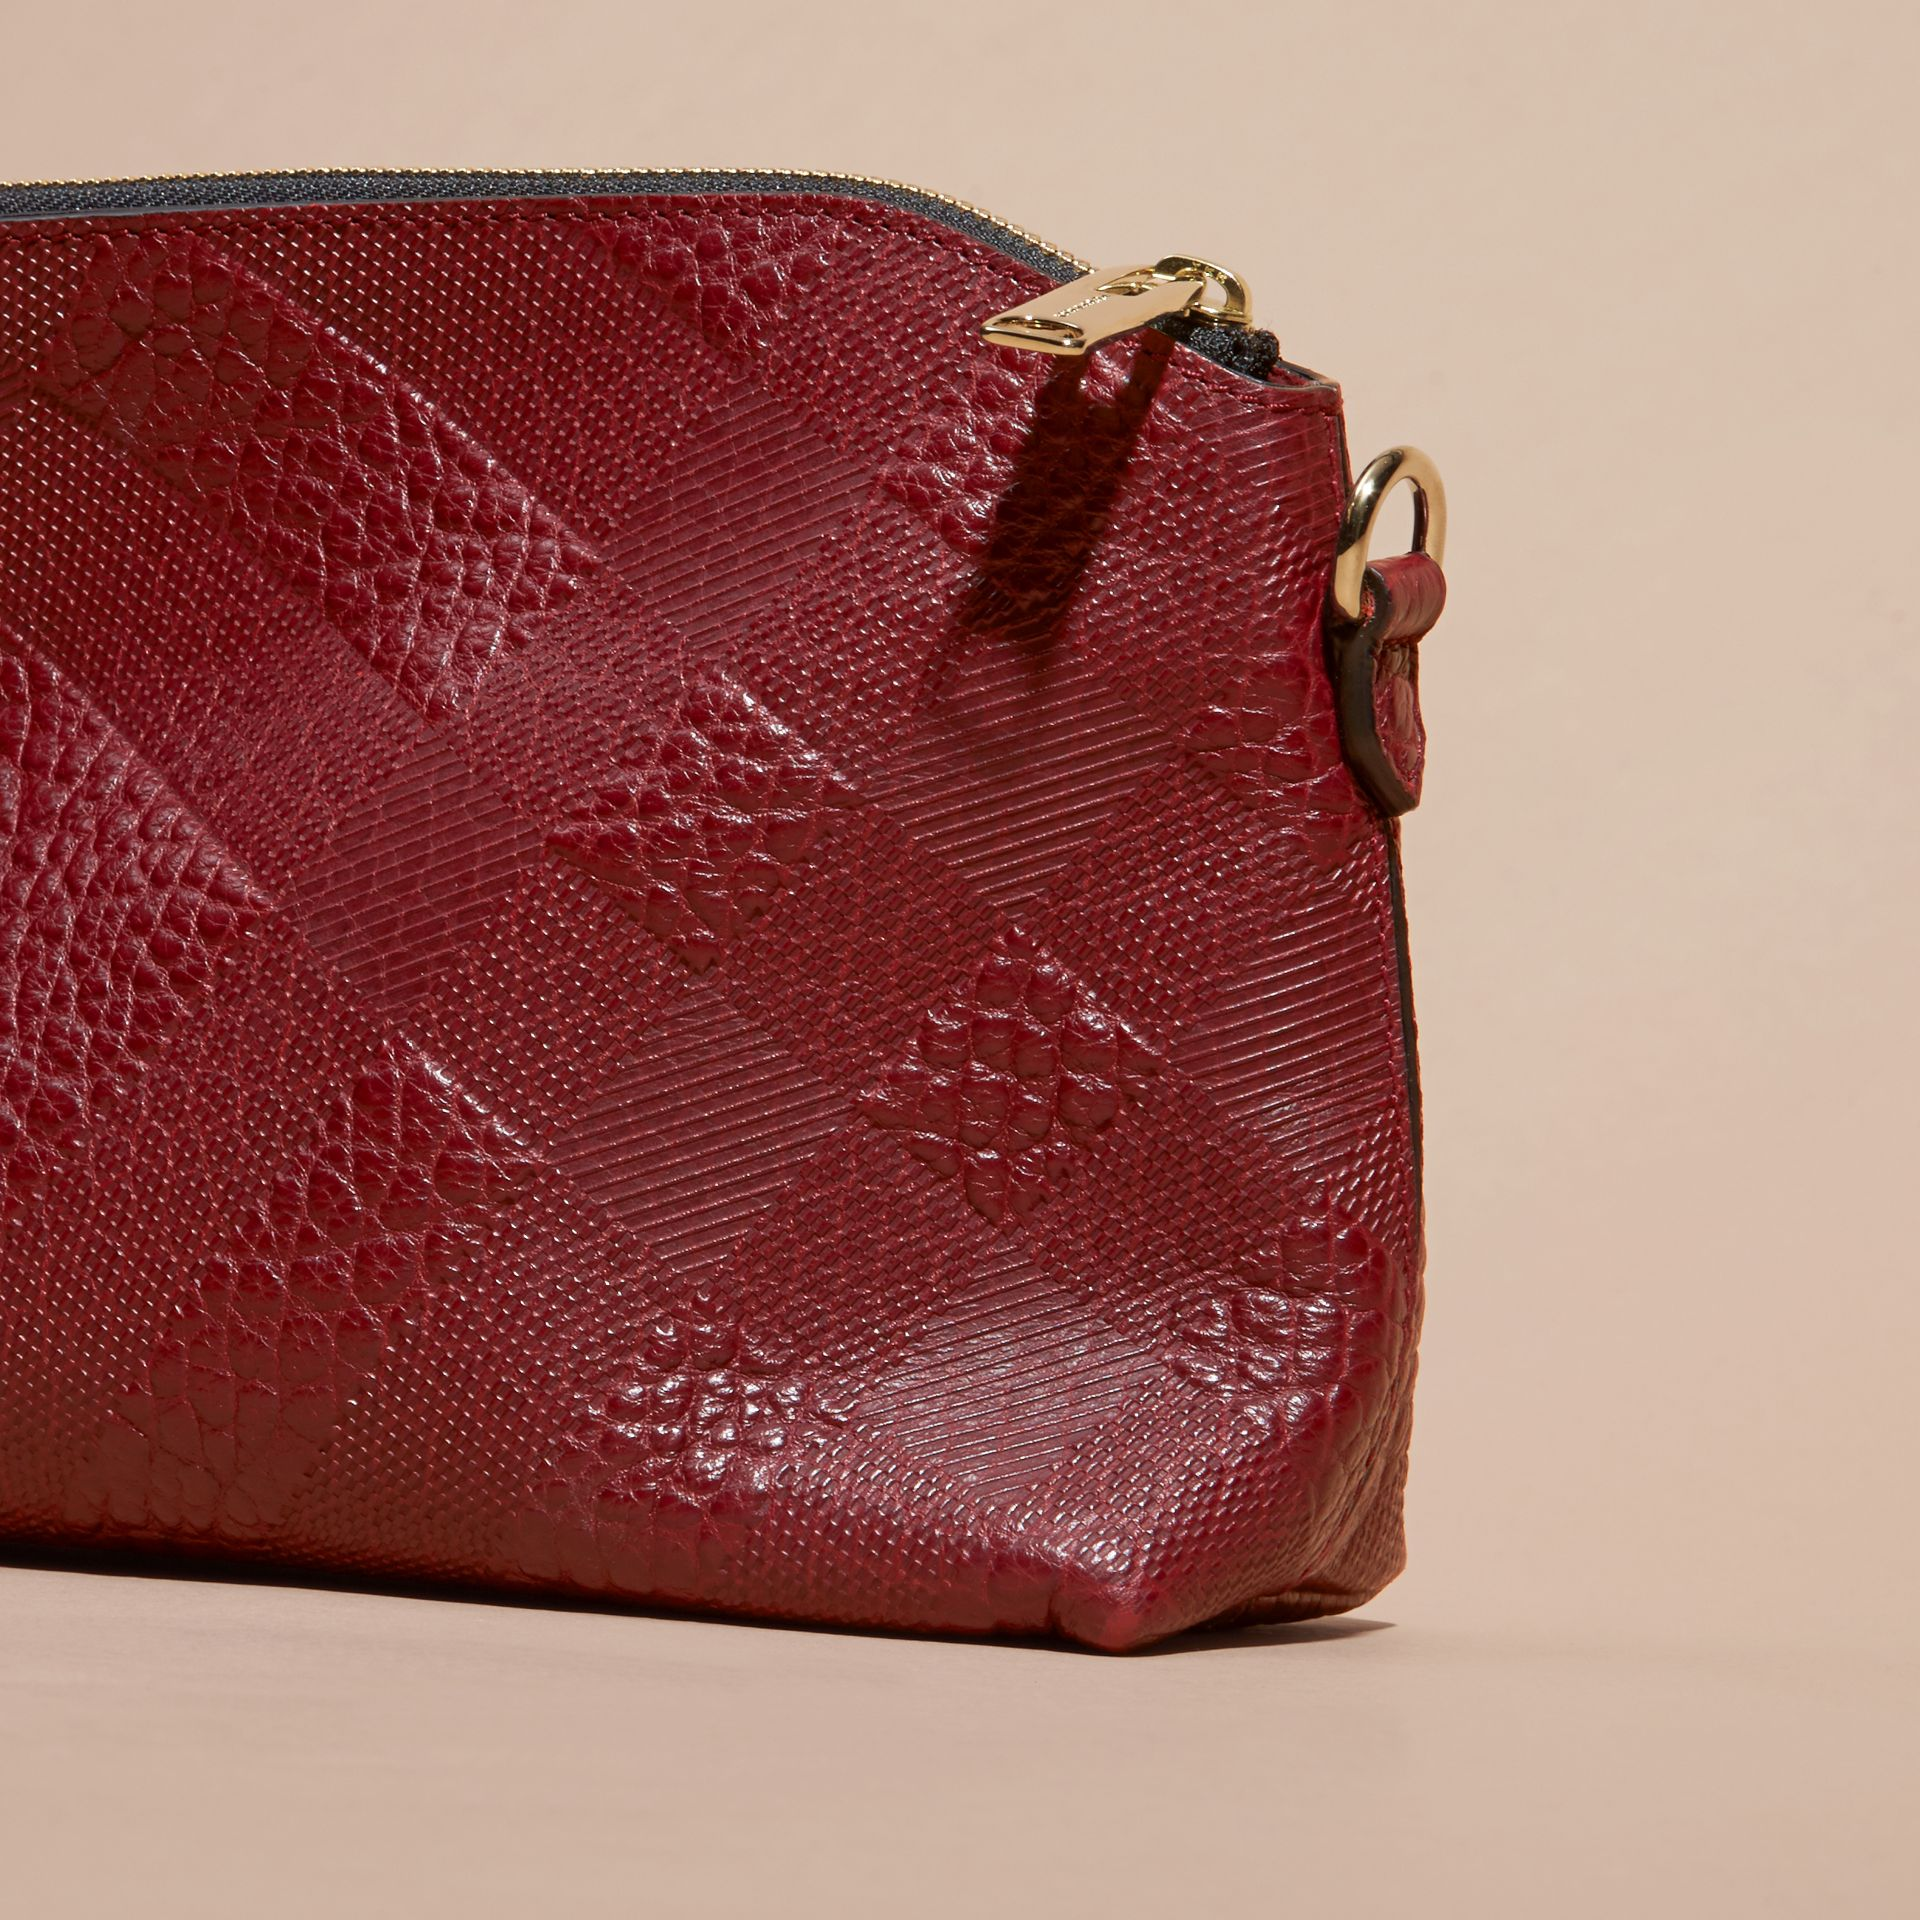 Deep red Small Embossed Check Leather Clutch Bag Deep Red - gallery image 5